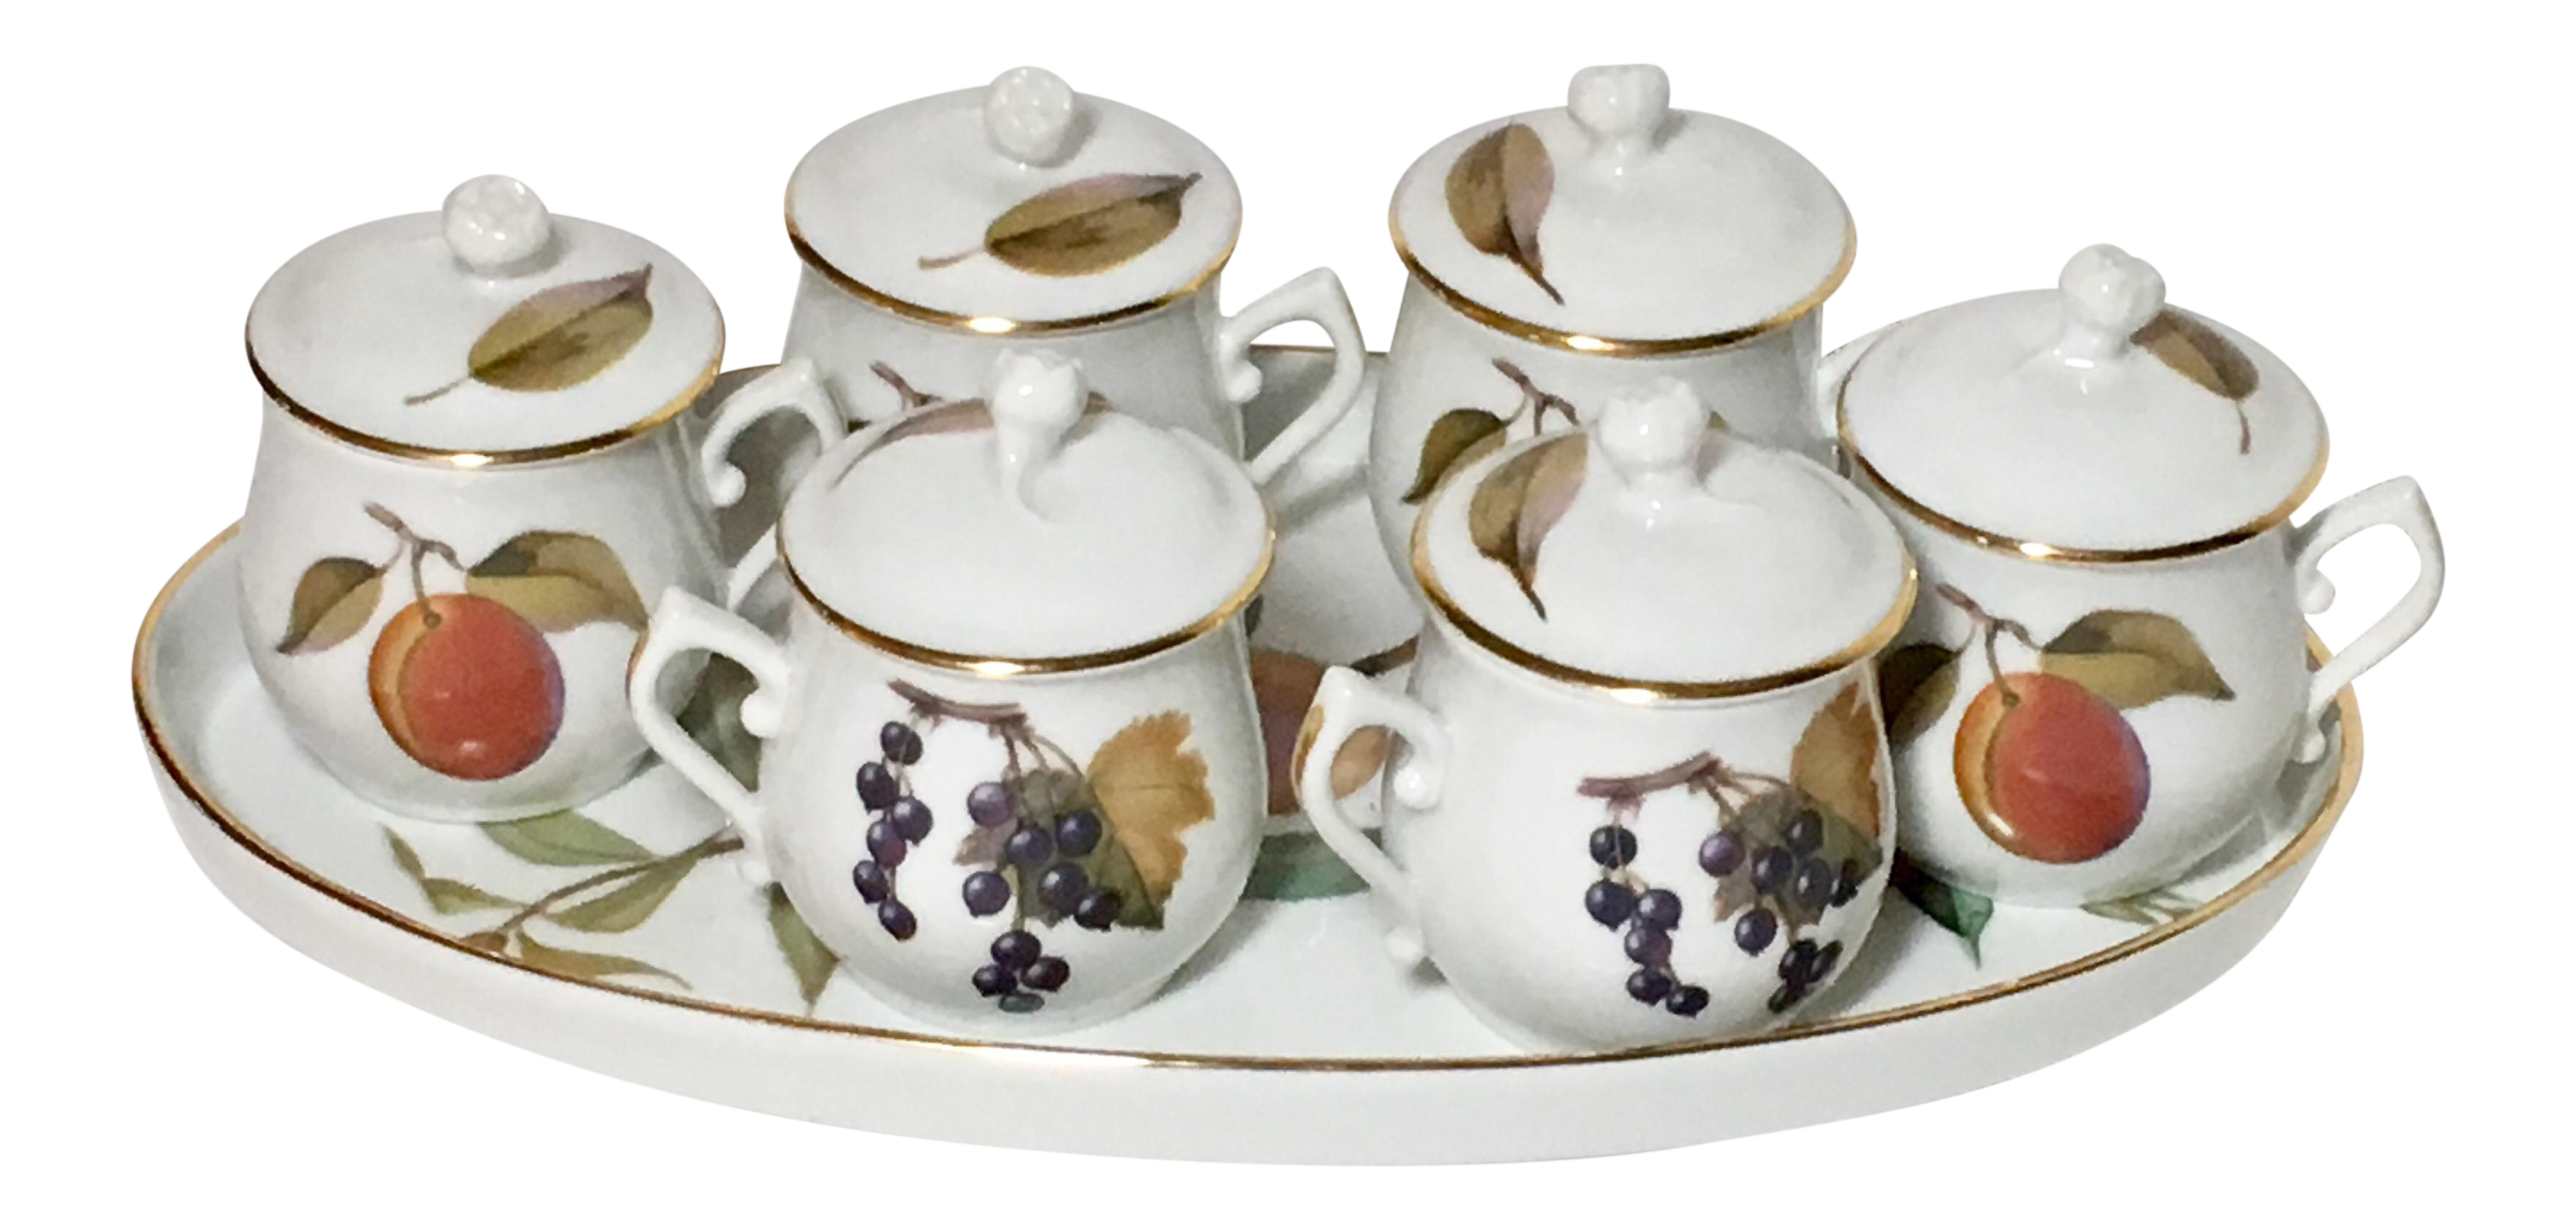 Royal Worcester Posset Cups u0026 Tray Evesham Service - Set of 7  sc 1 st  Chairish : evesham tableware - pezcame.com